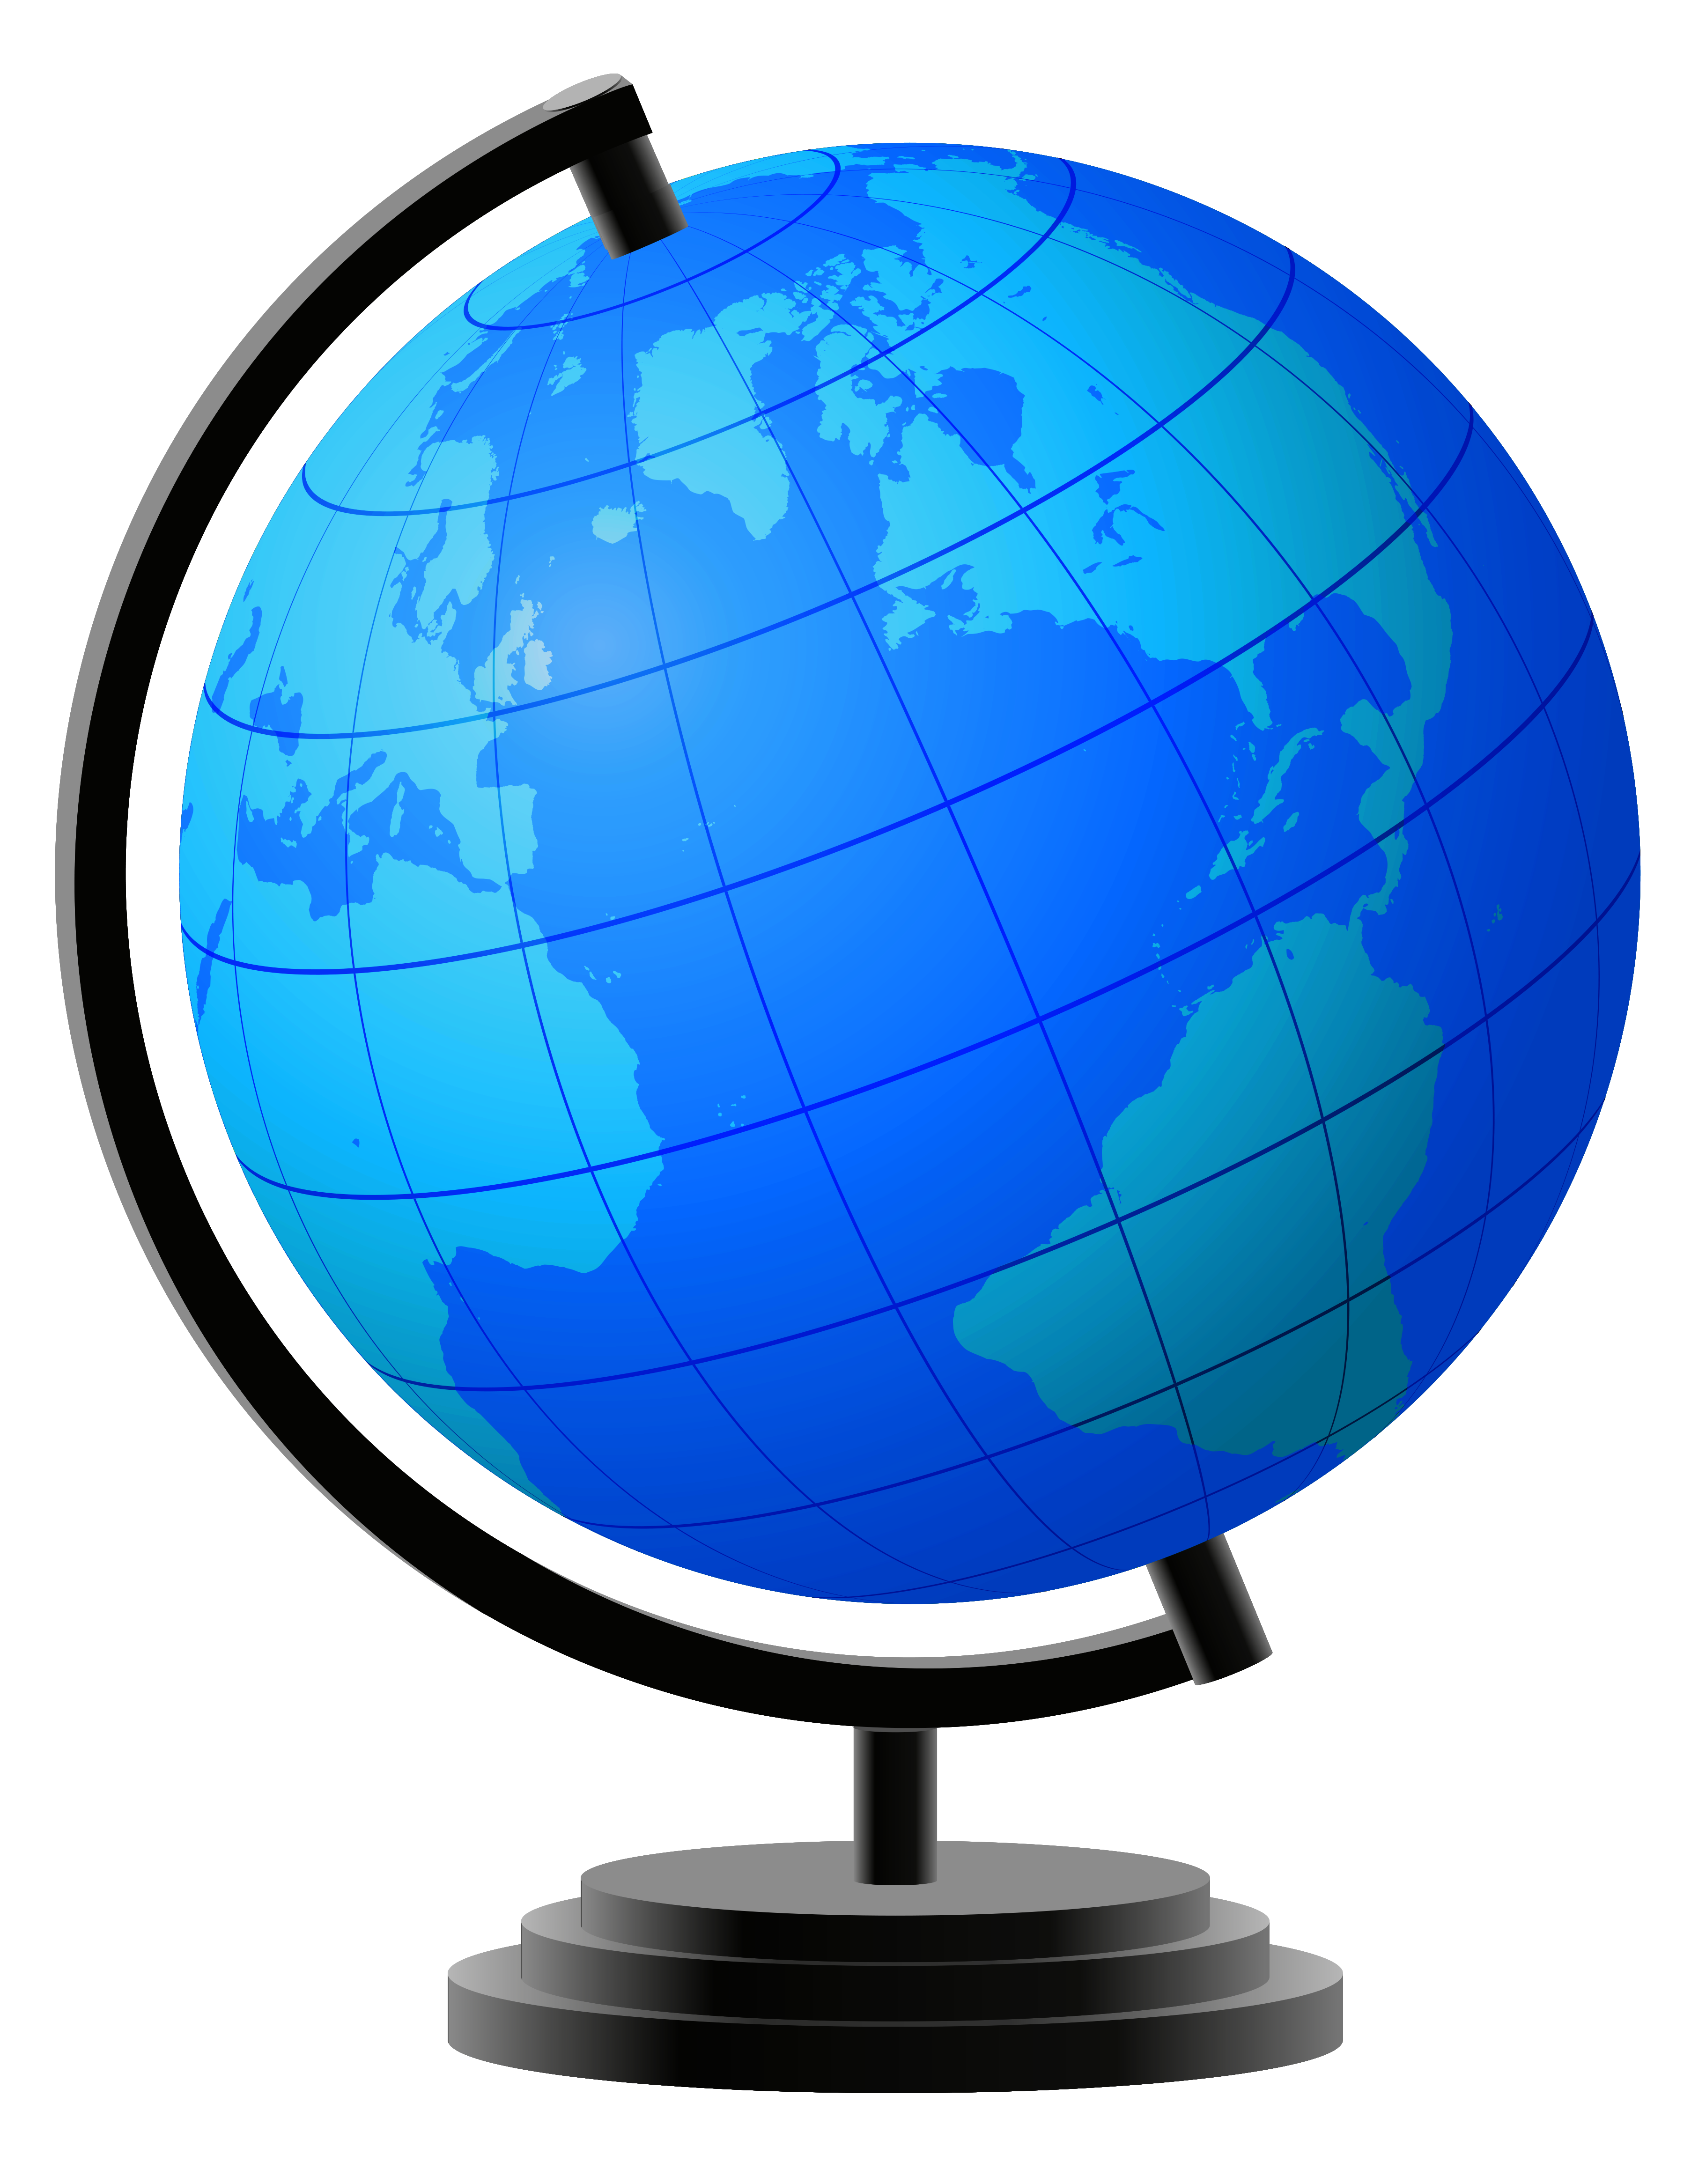 School globe png image. Planet clipart display